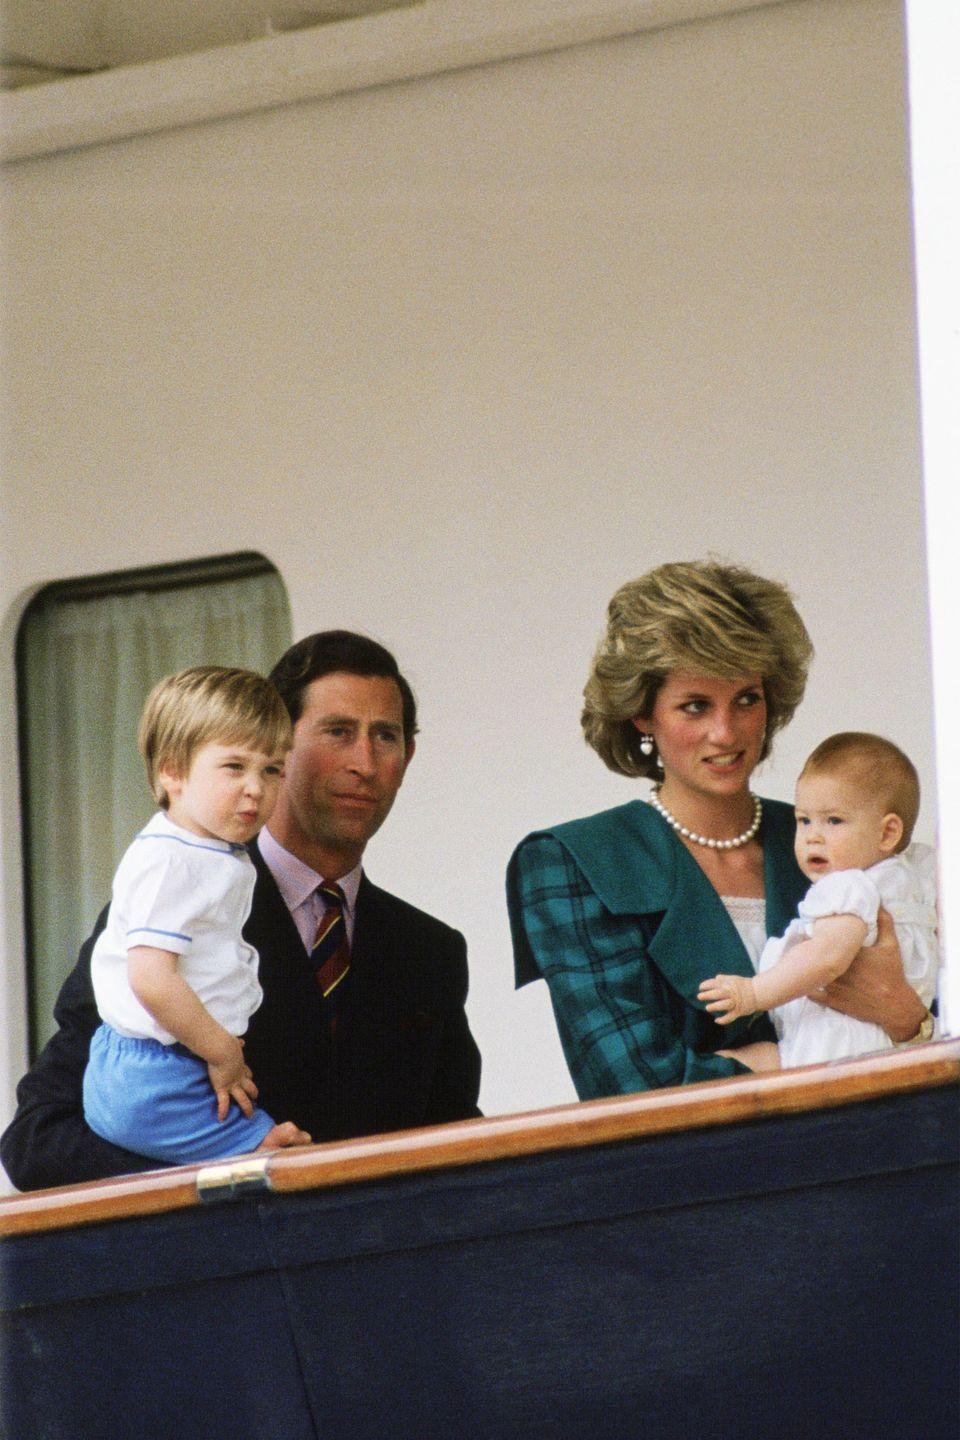 <p>Aboard the the Royal Yacht Britannia in Venice with Prince William and Prince Harry in tow. </p>